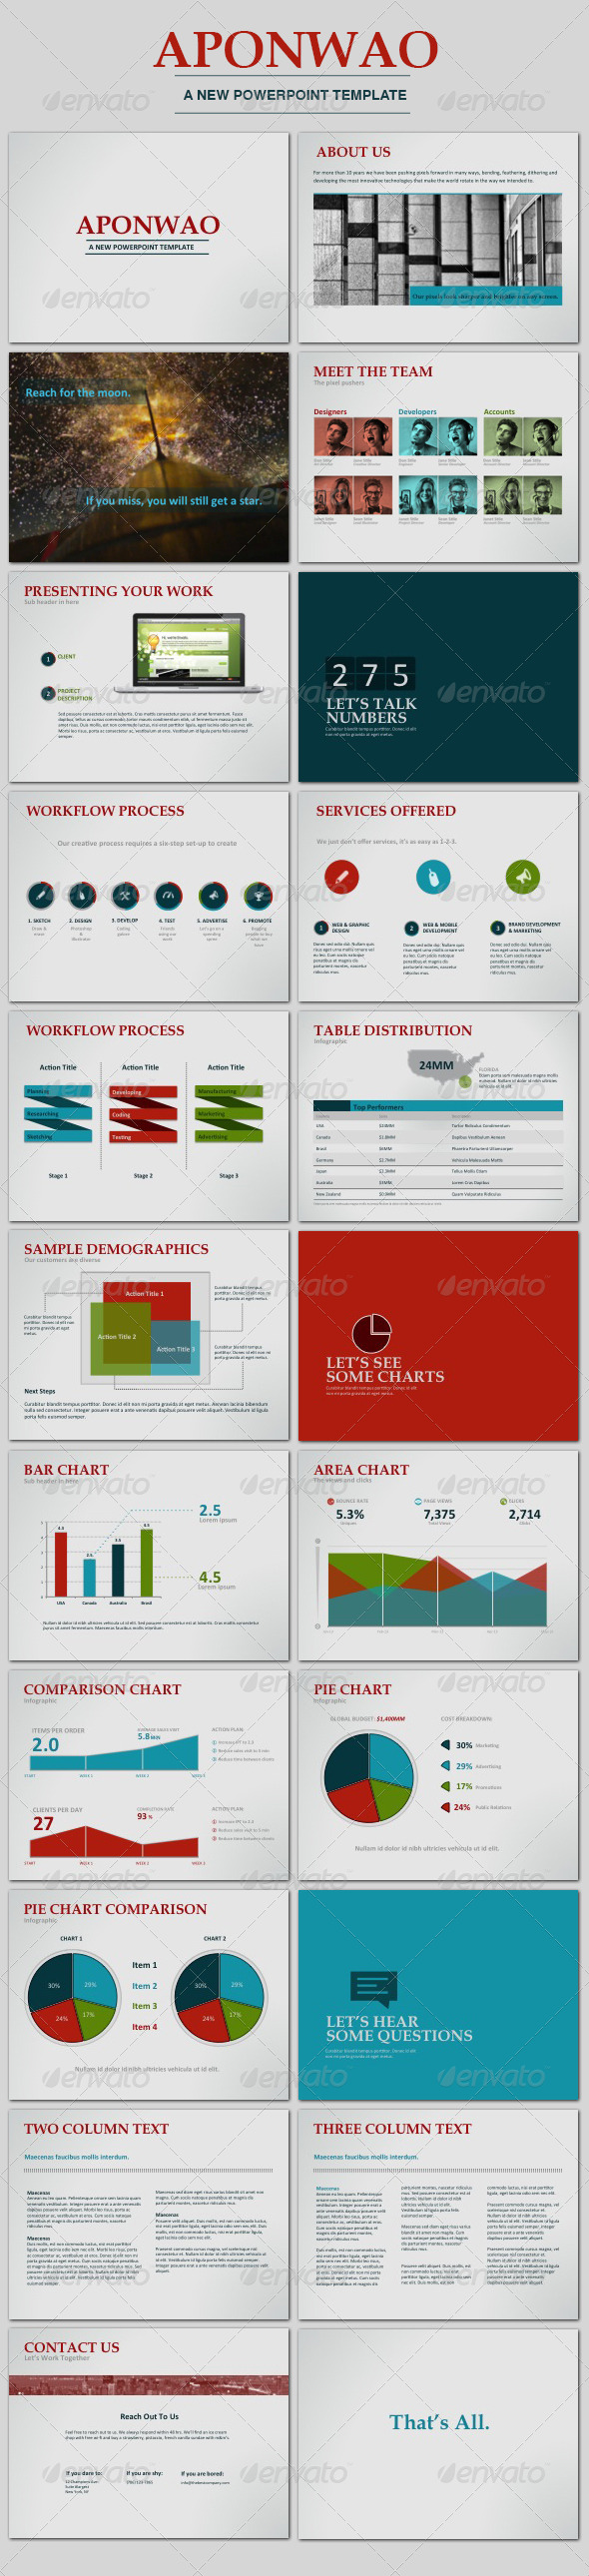 GraphicRiver Aponwao Powerpoint Template 4860242